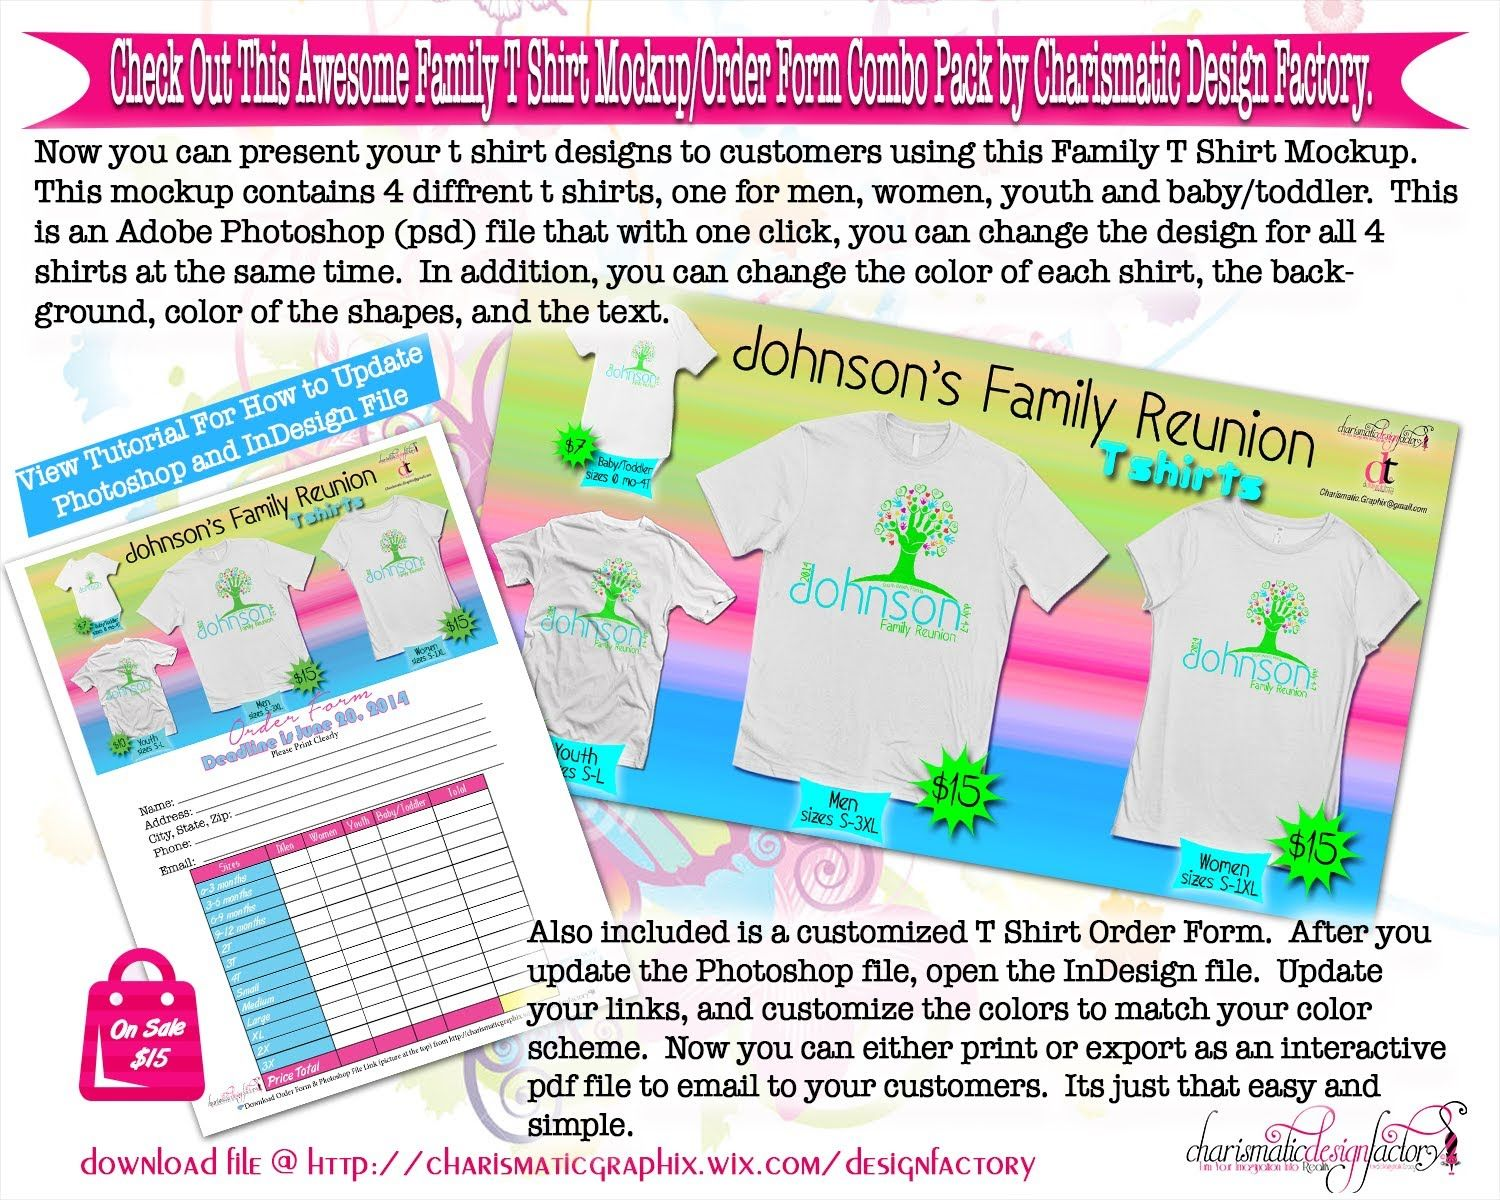 Family T Shirt Mockup  Order Sheet Can Be Downloaded From Http